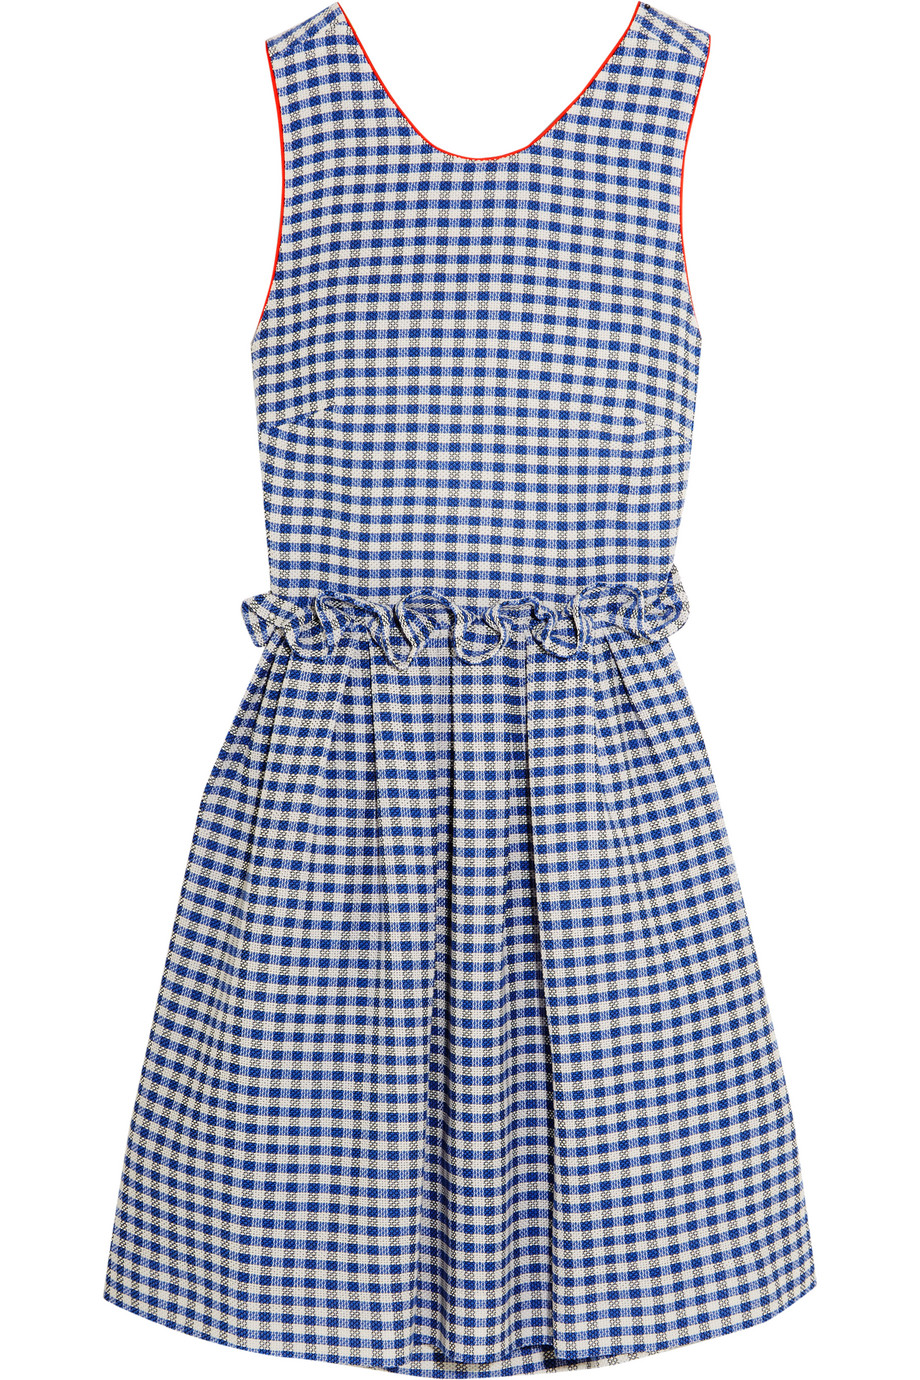 Mother of Pearl Lola Ruffled Gingham Cotton Dress, Blue, Women's, Size: 10